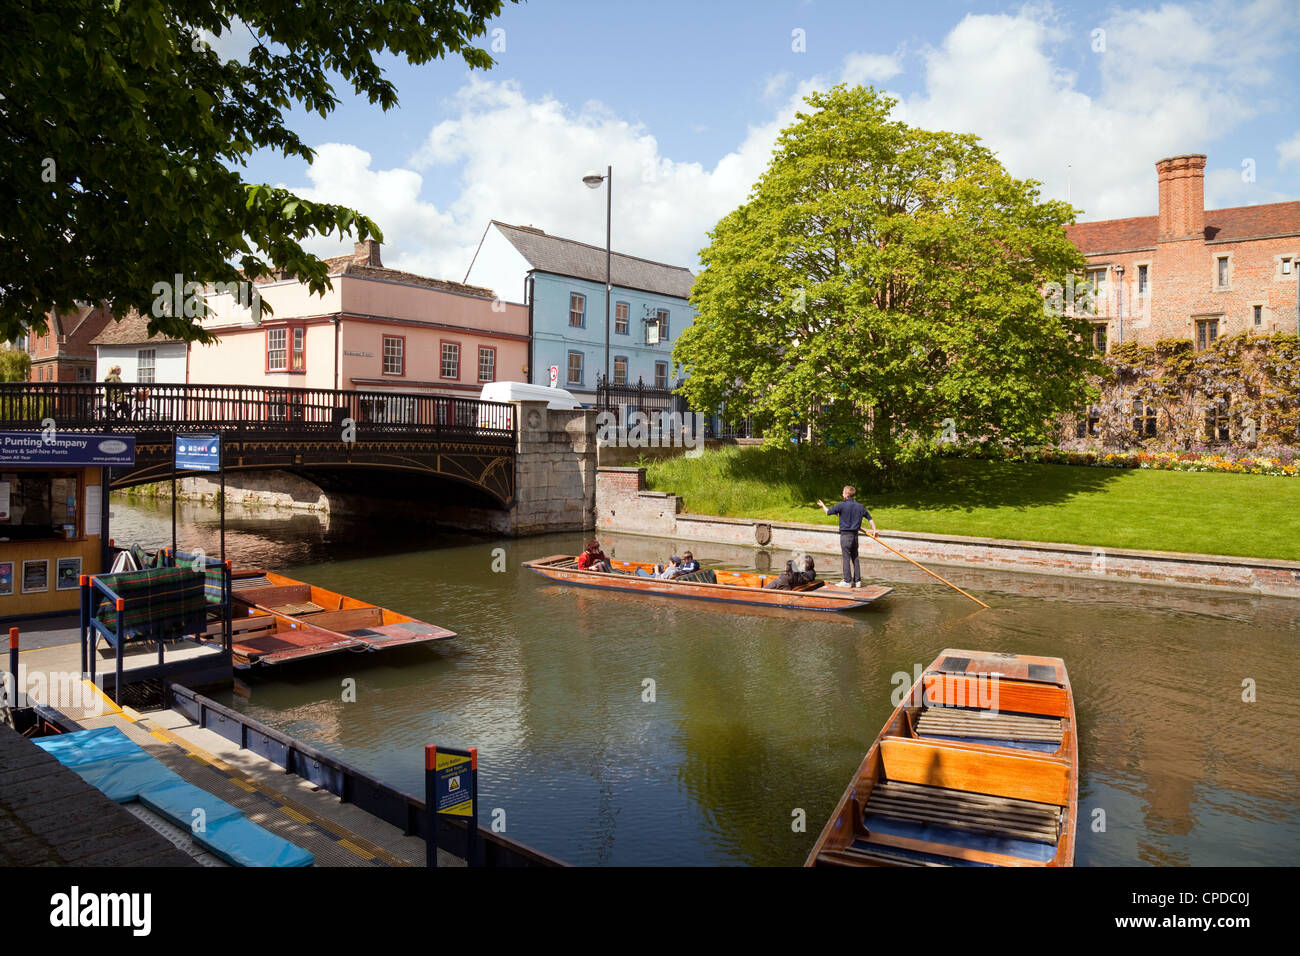 People punting on the river Cam at Magdalene Bridge, Cambridge UK - Stock Image